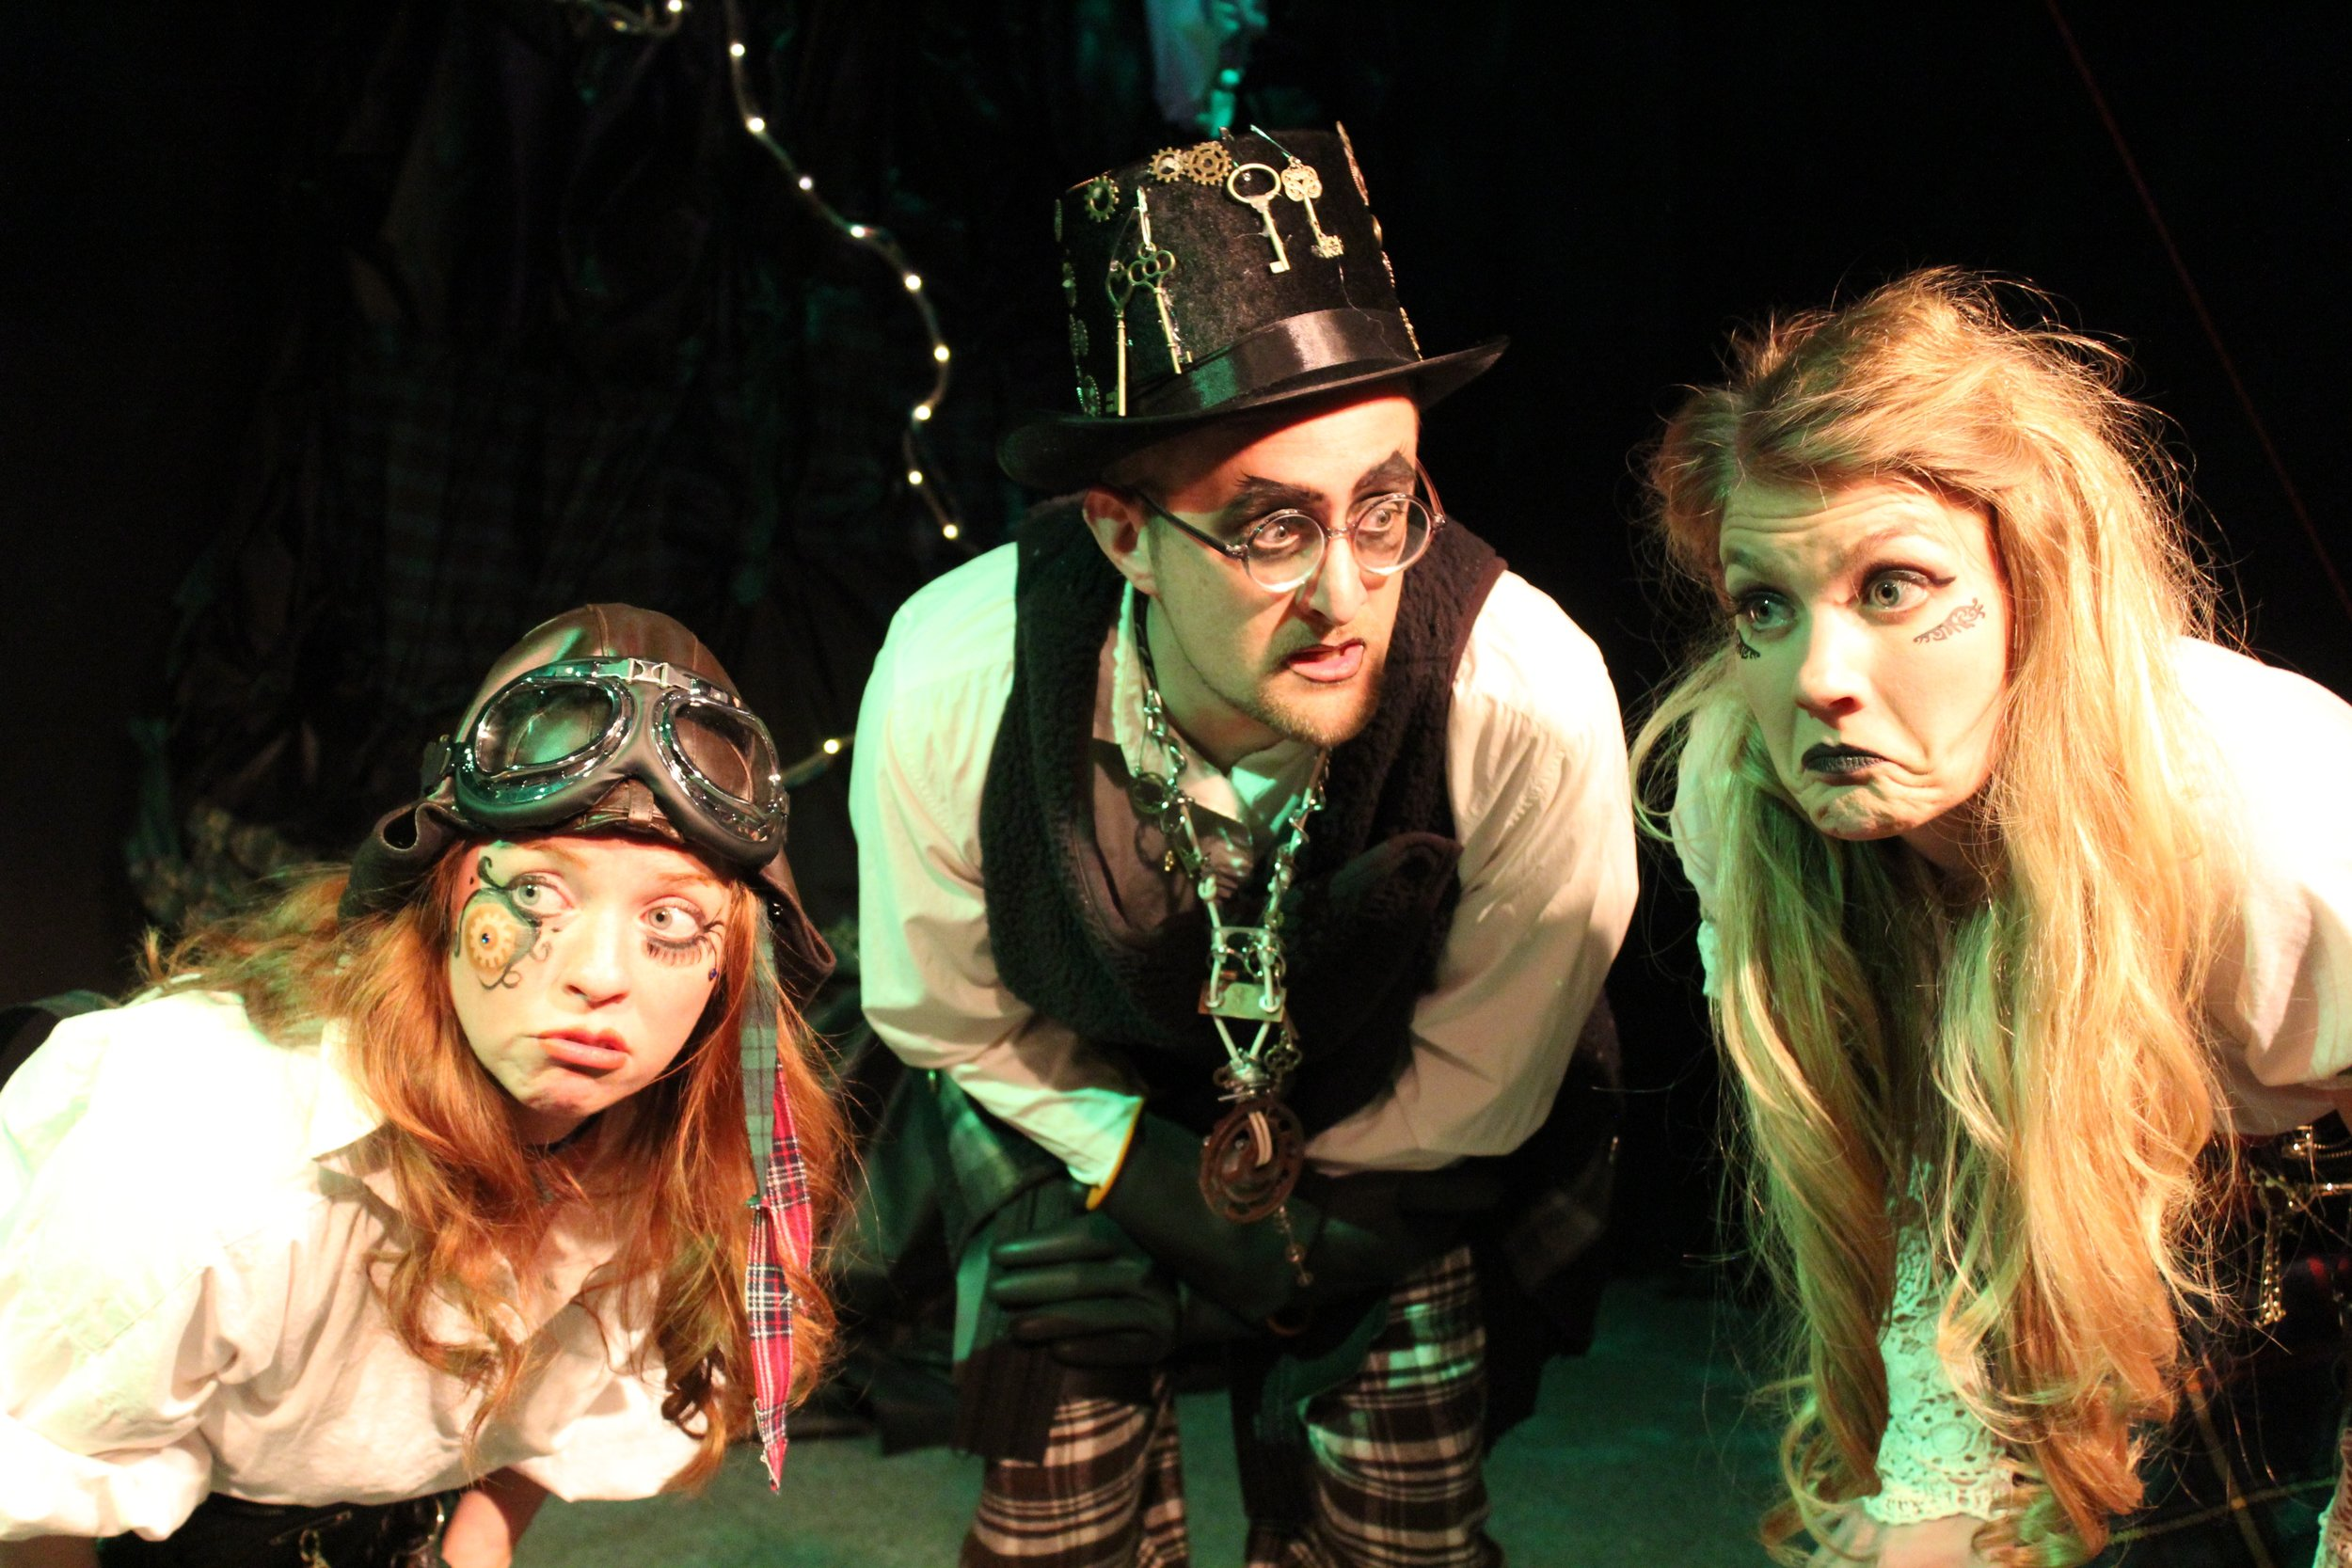 Karin Carr  as The Lass, Ryan Barnett as The Mischanter, and  Katie Medved as The Older Sis